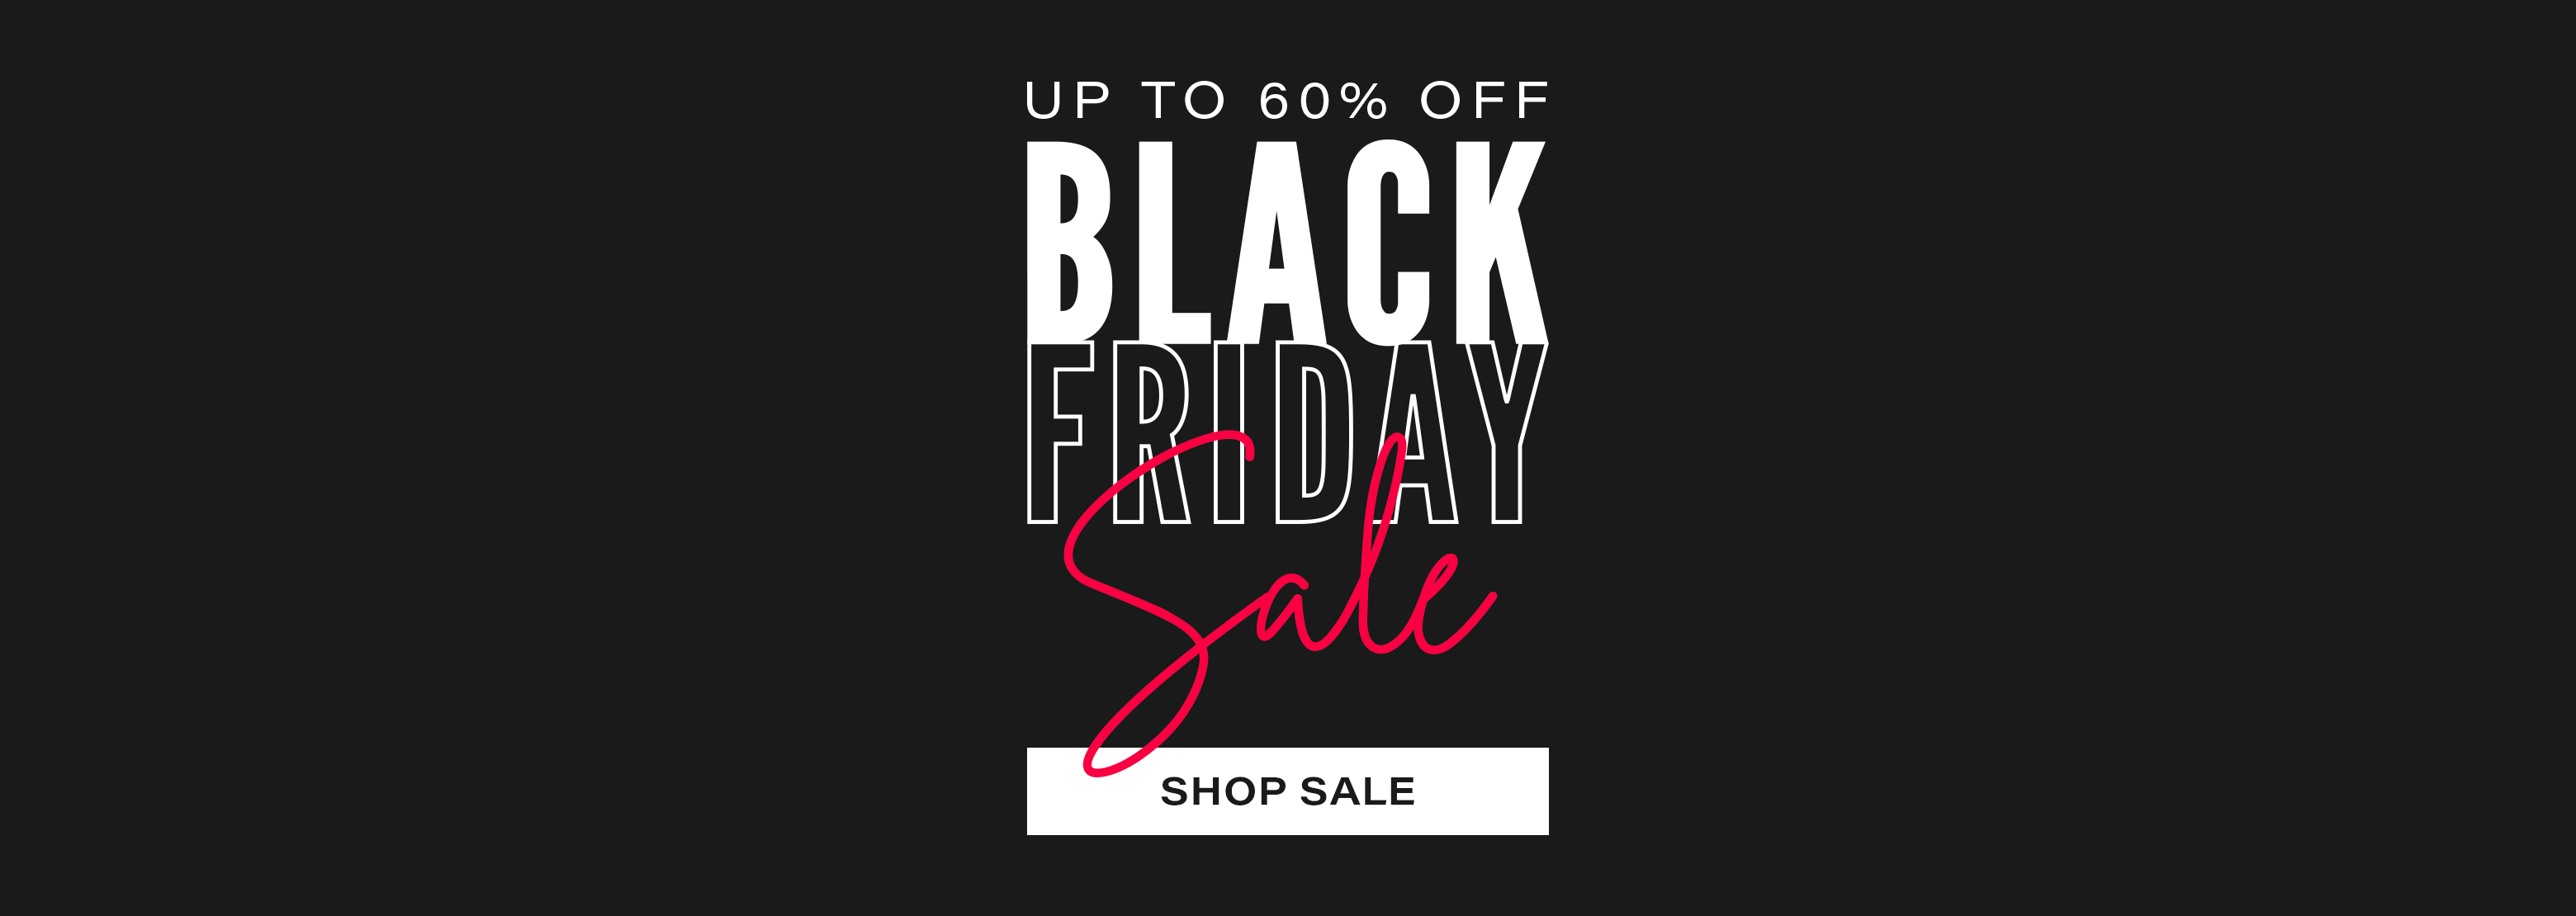 Black Friday Sale - up to 60% off everything